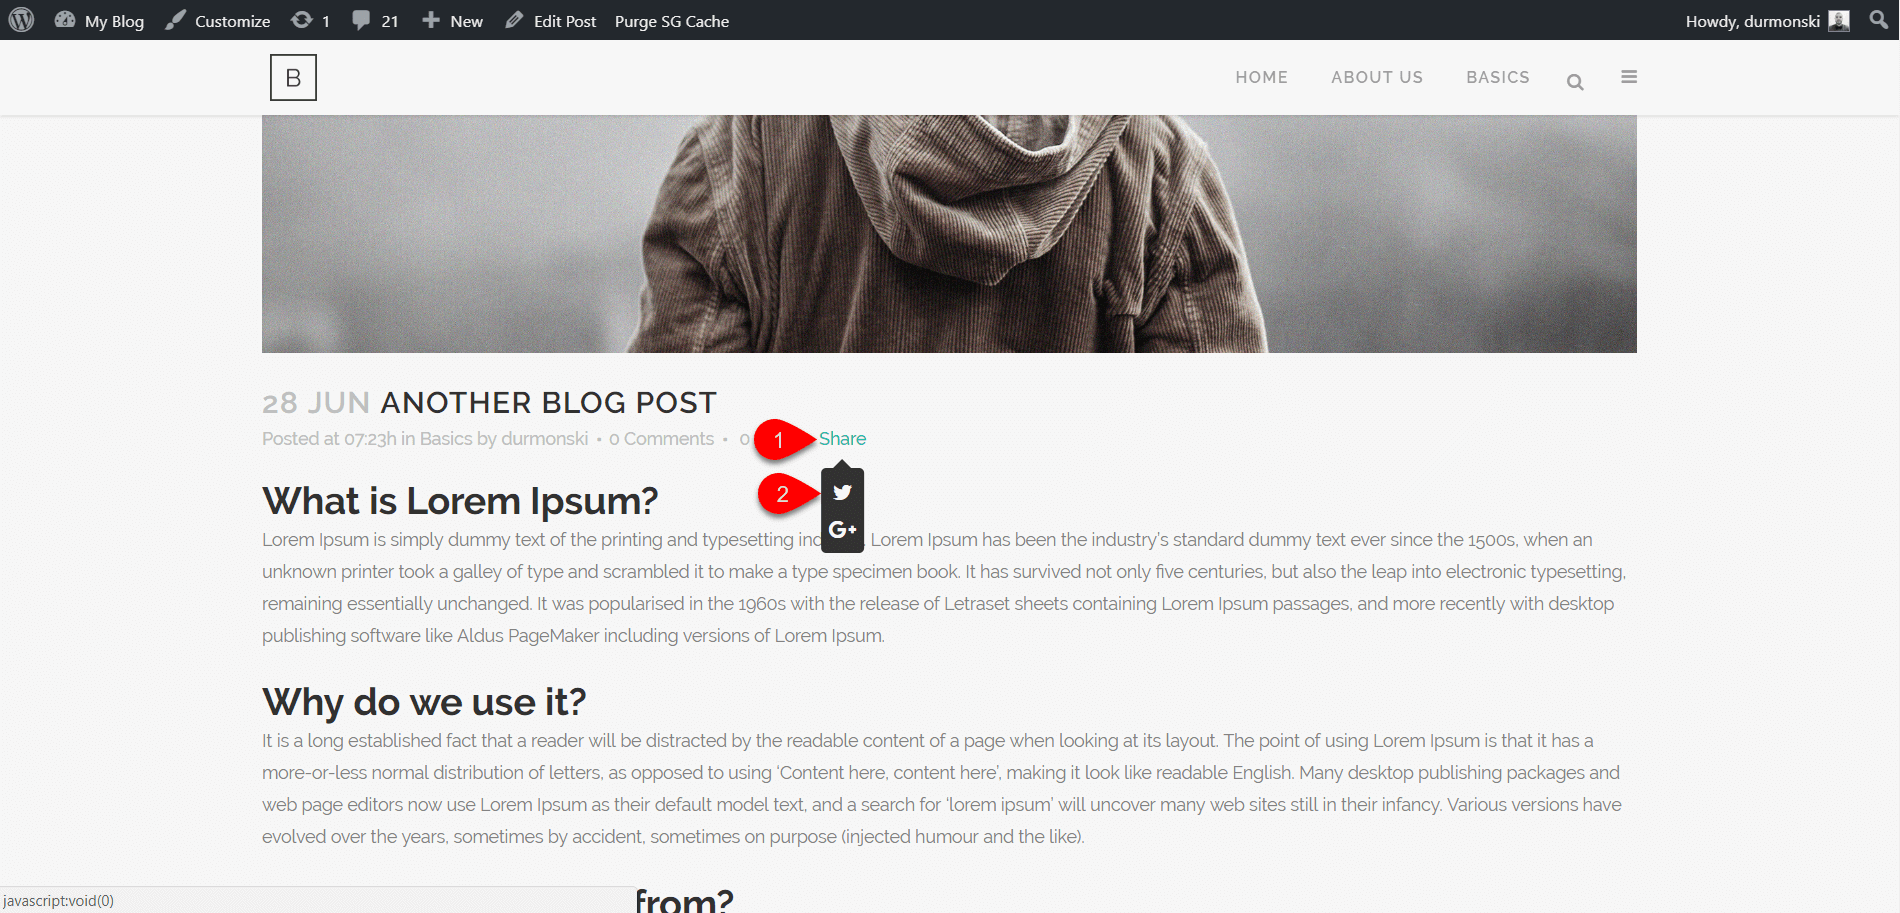 Review of the WordPress theme Bridge 25